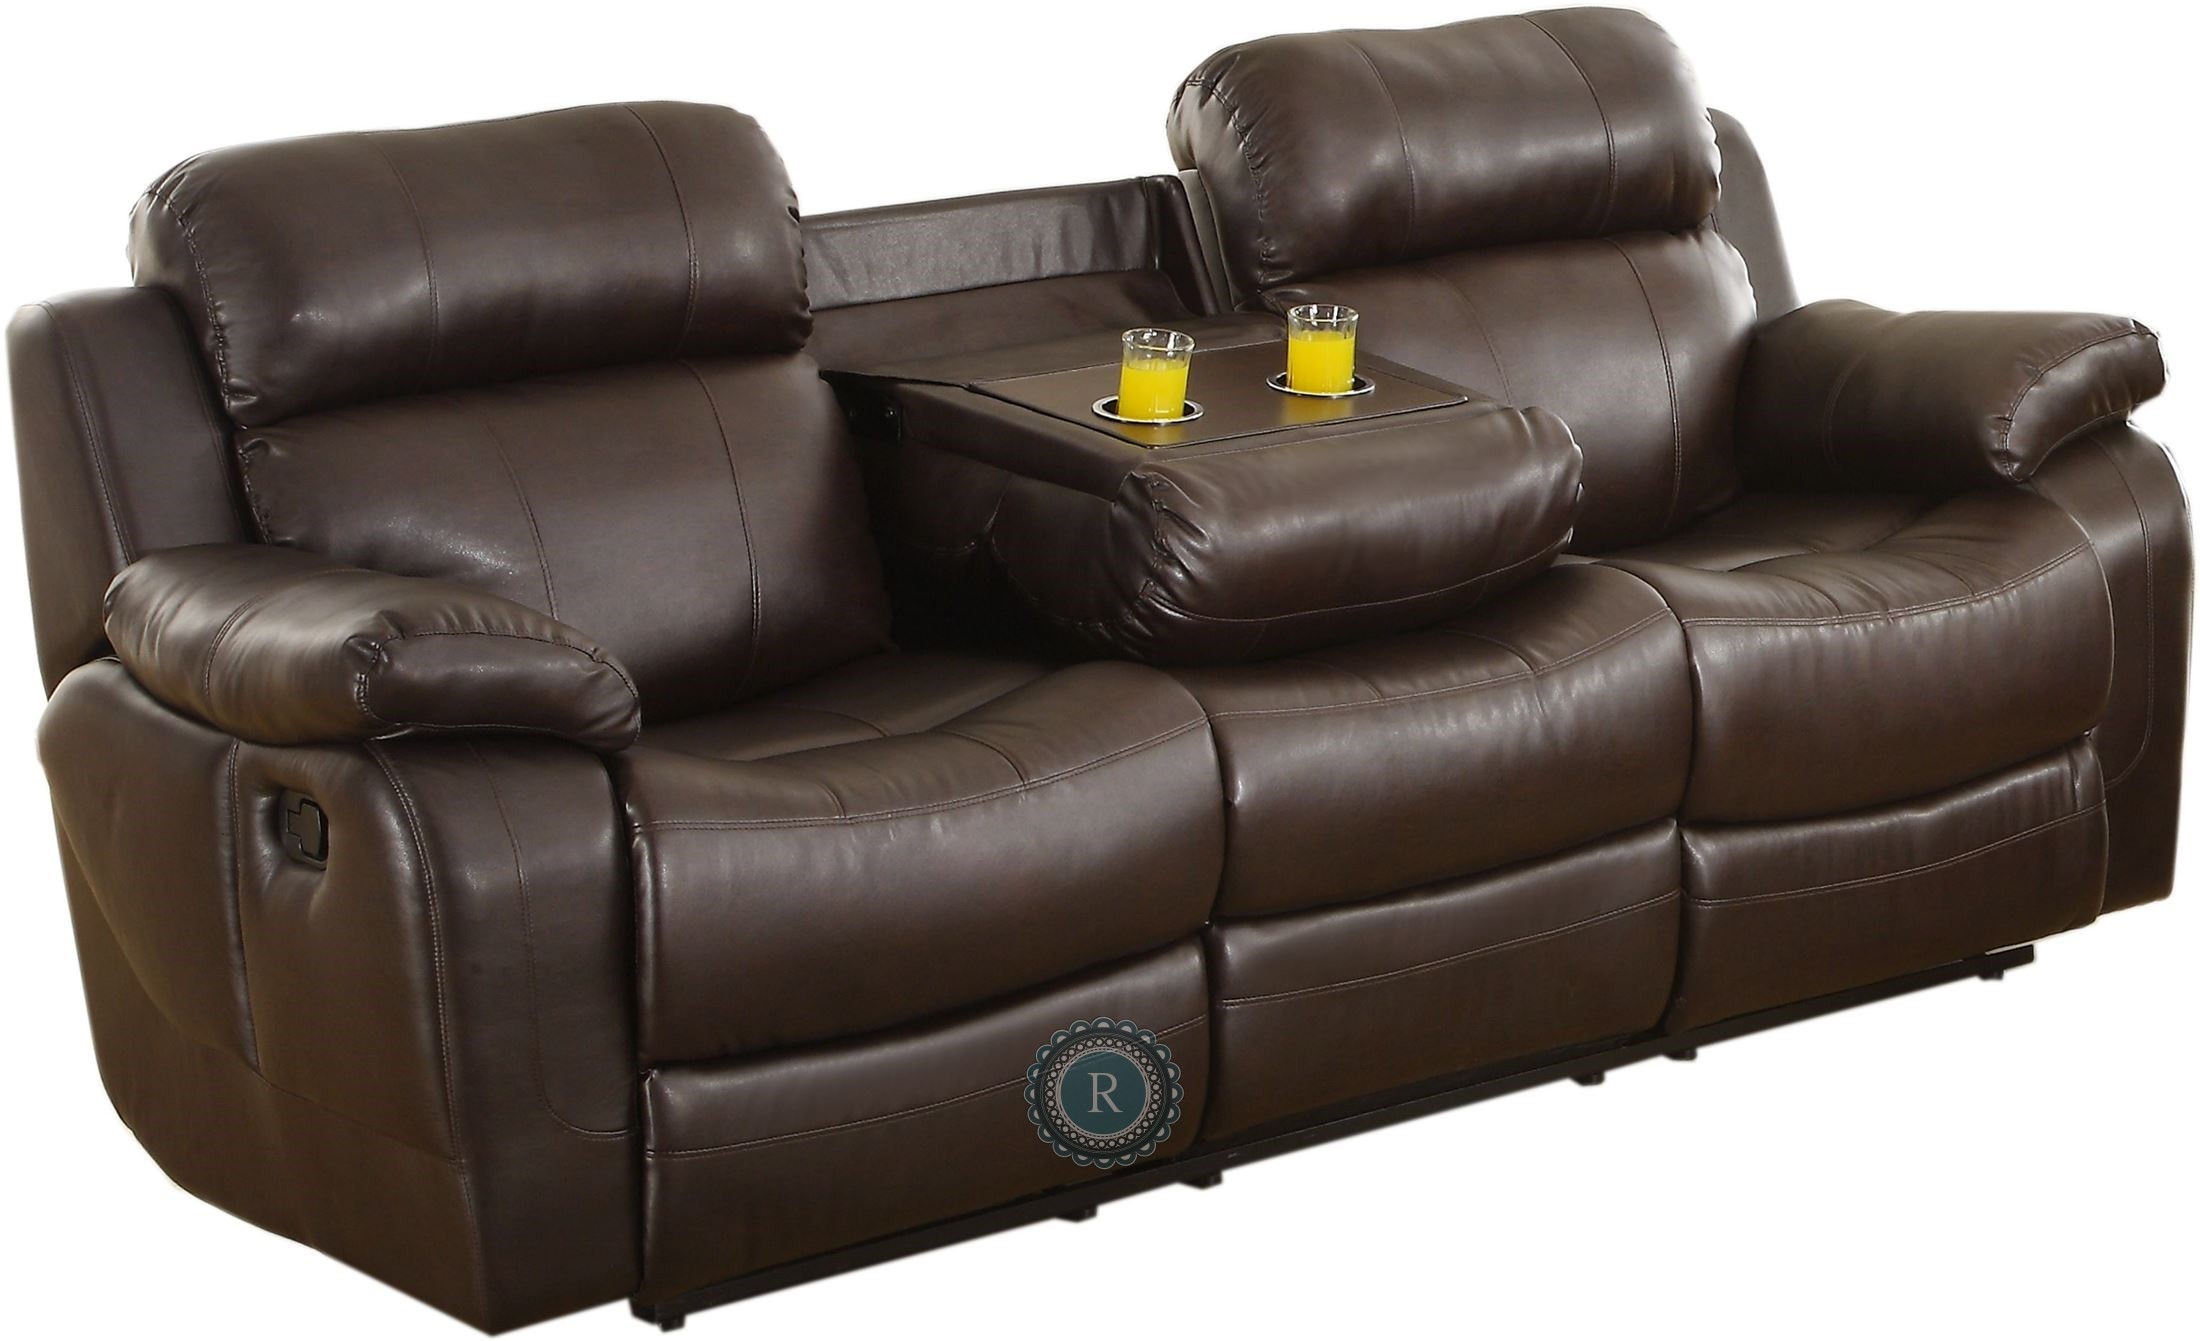 cobra dual reclining sofa reviews nice sofas under 1000 marille dark brown double with center drop